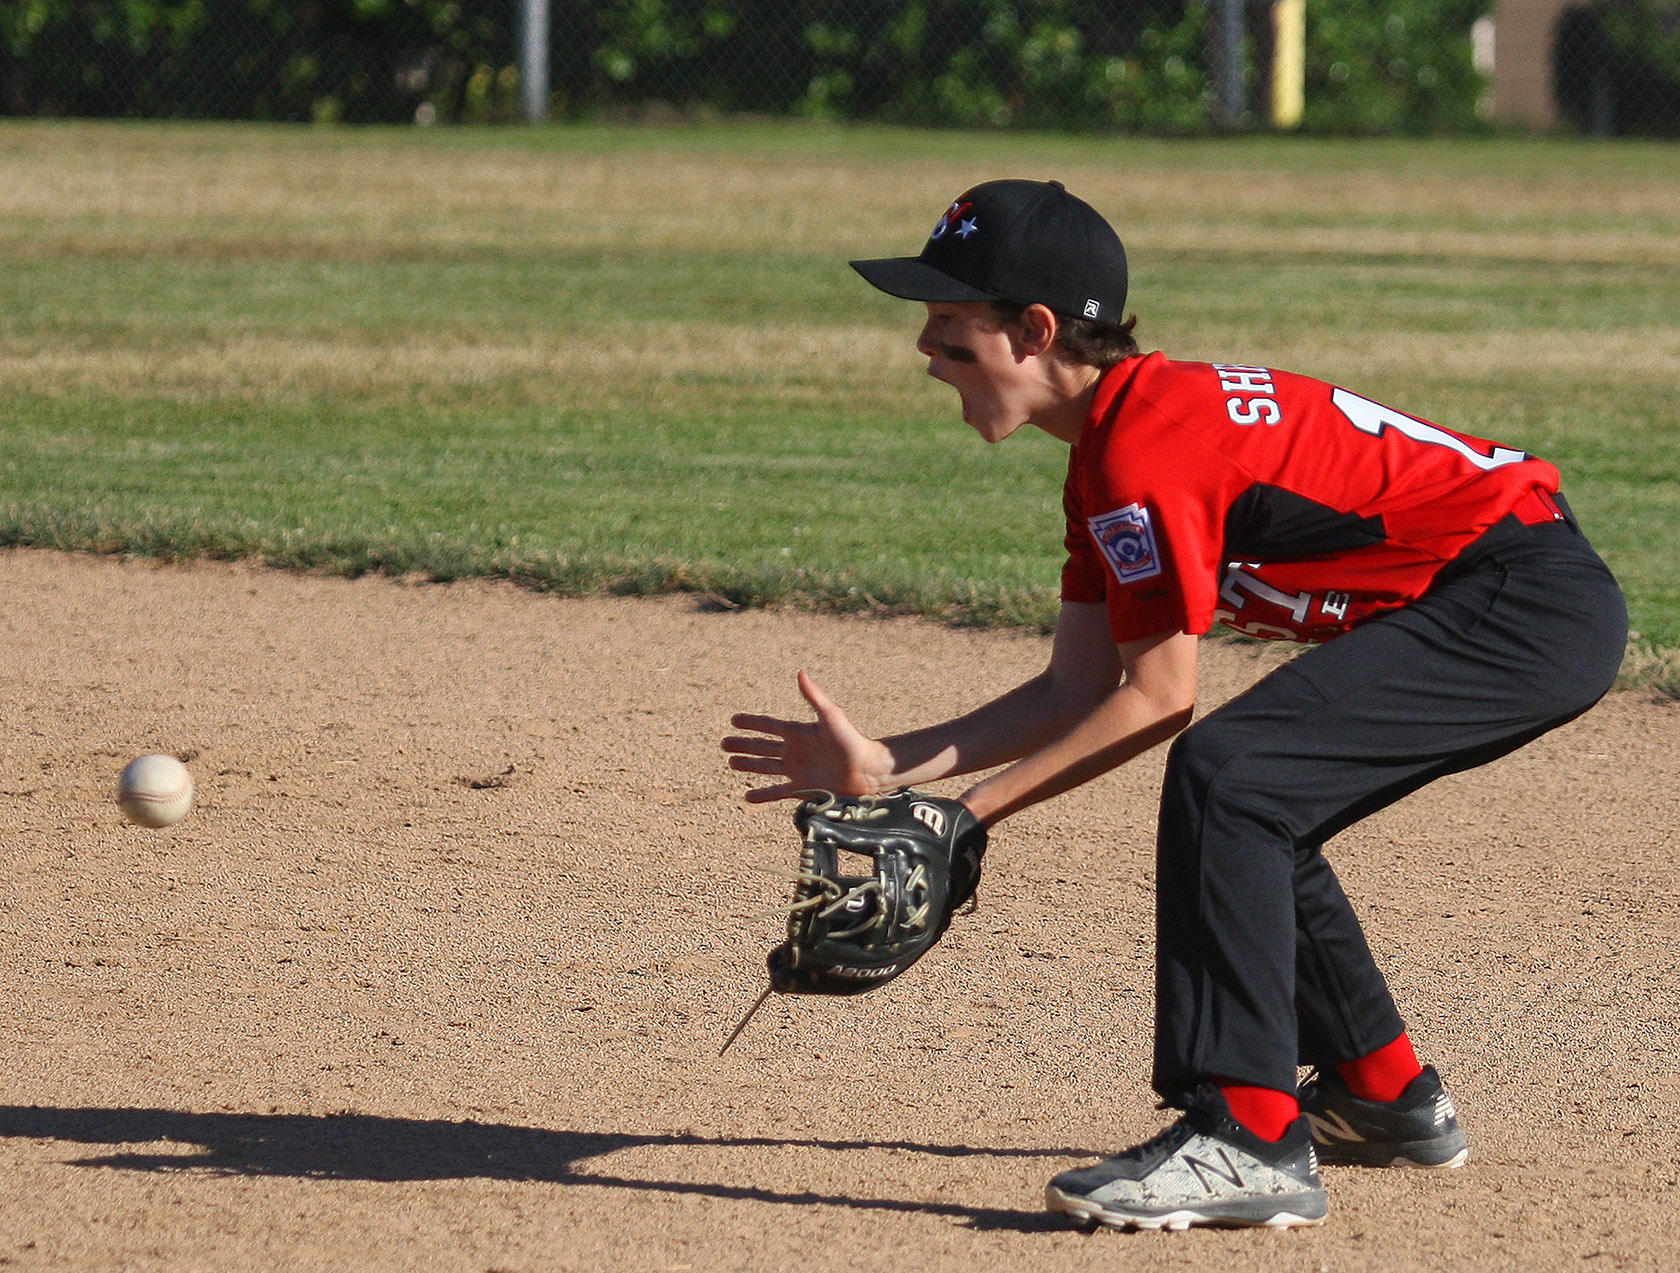 Second baseman Joe Sherick of West Seattle waits for a ground ball.